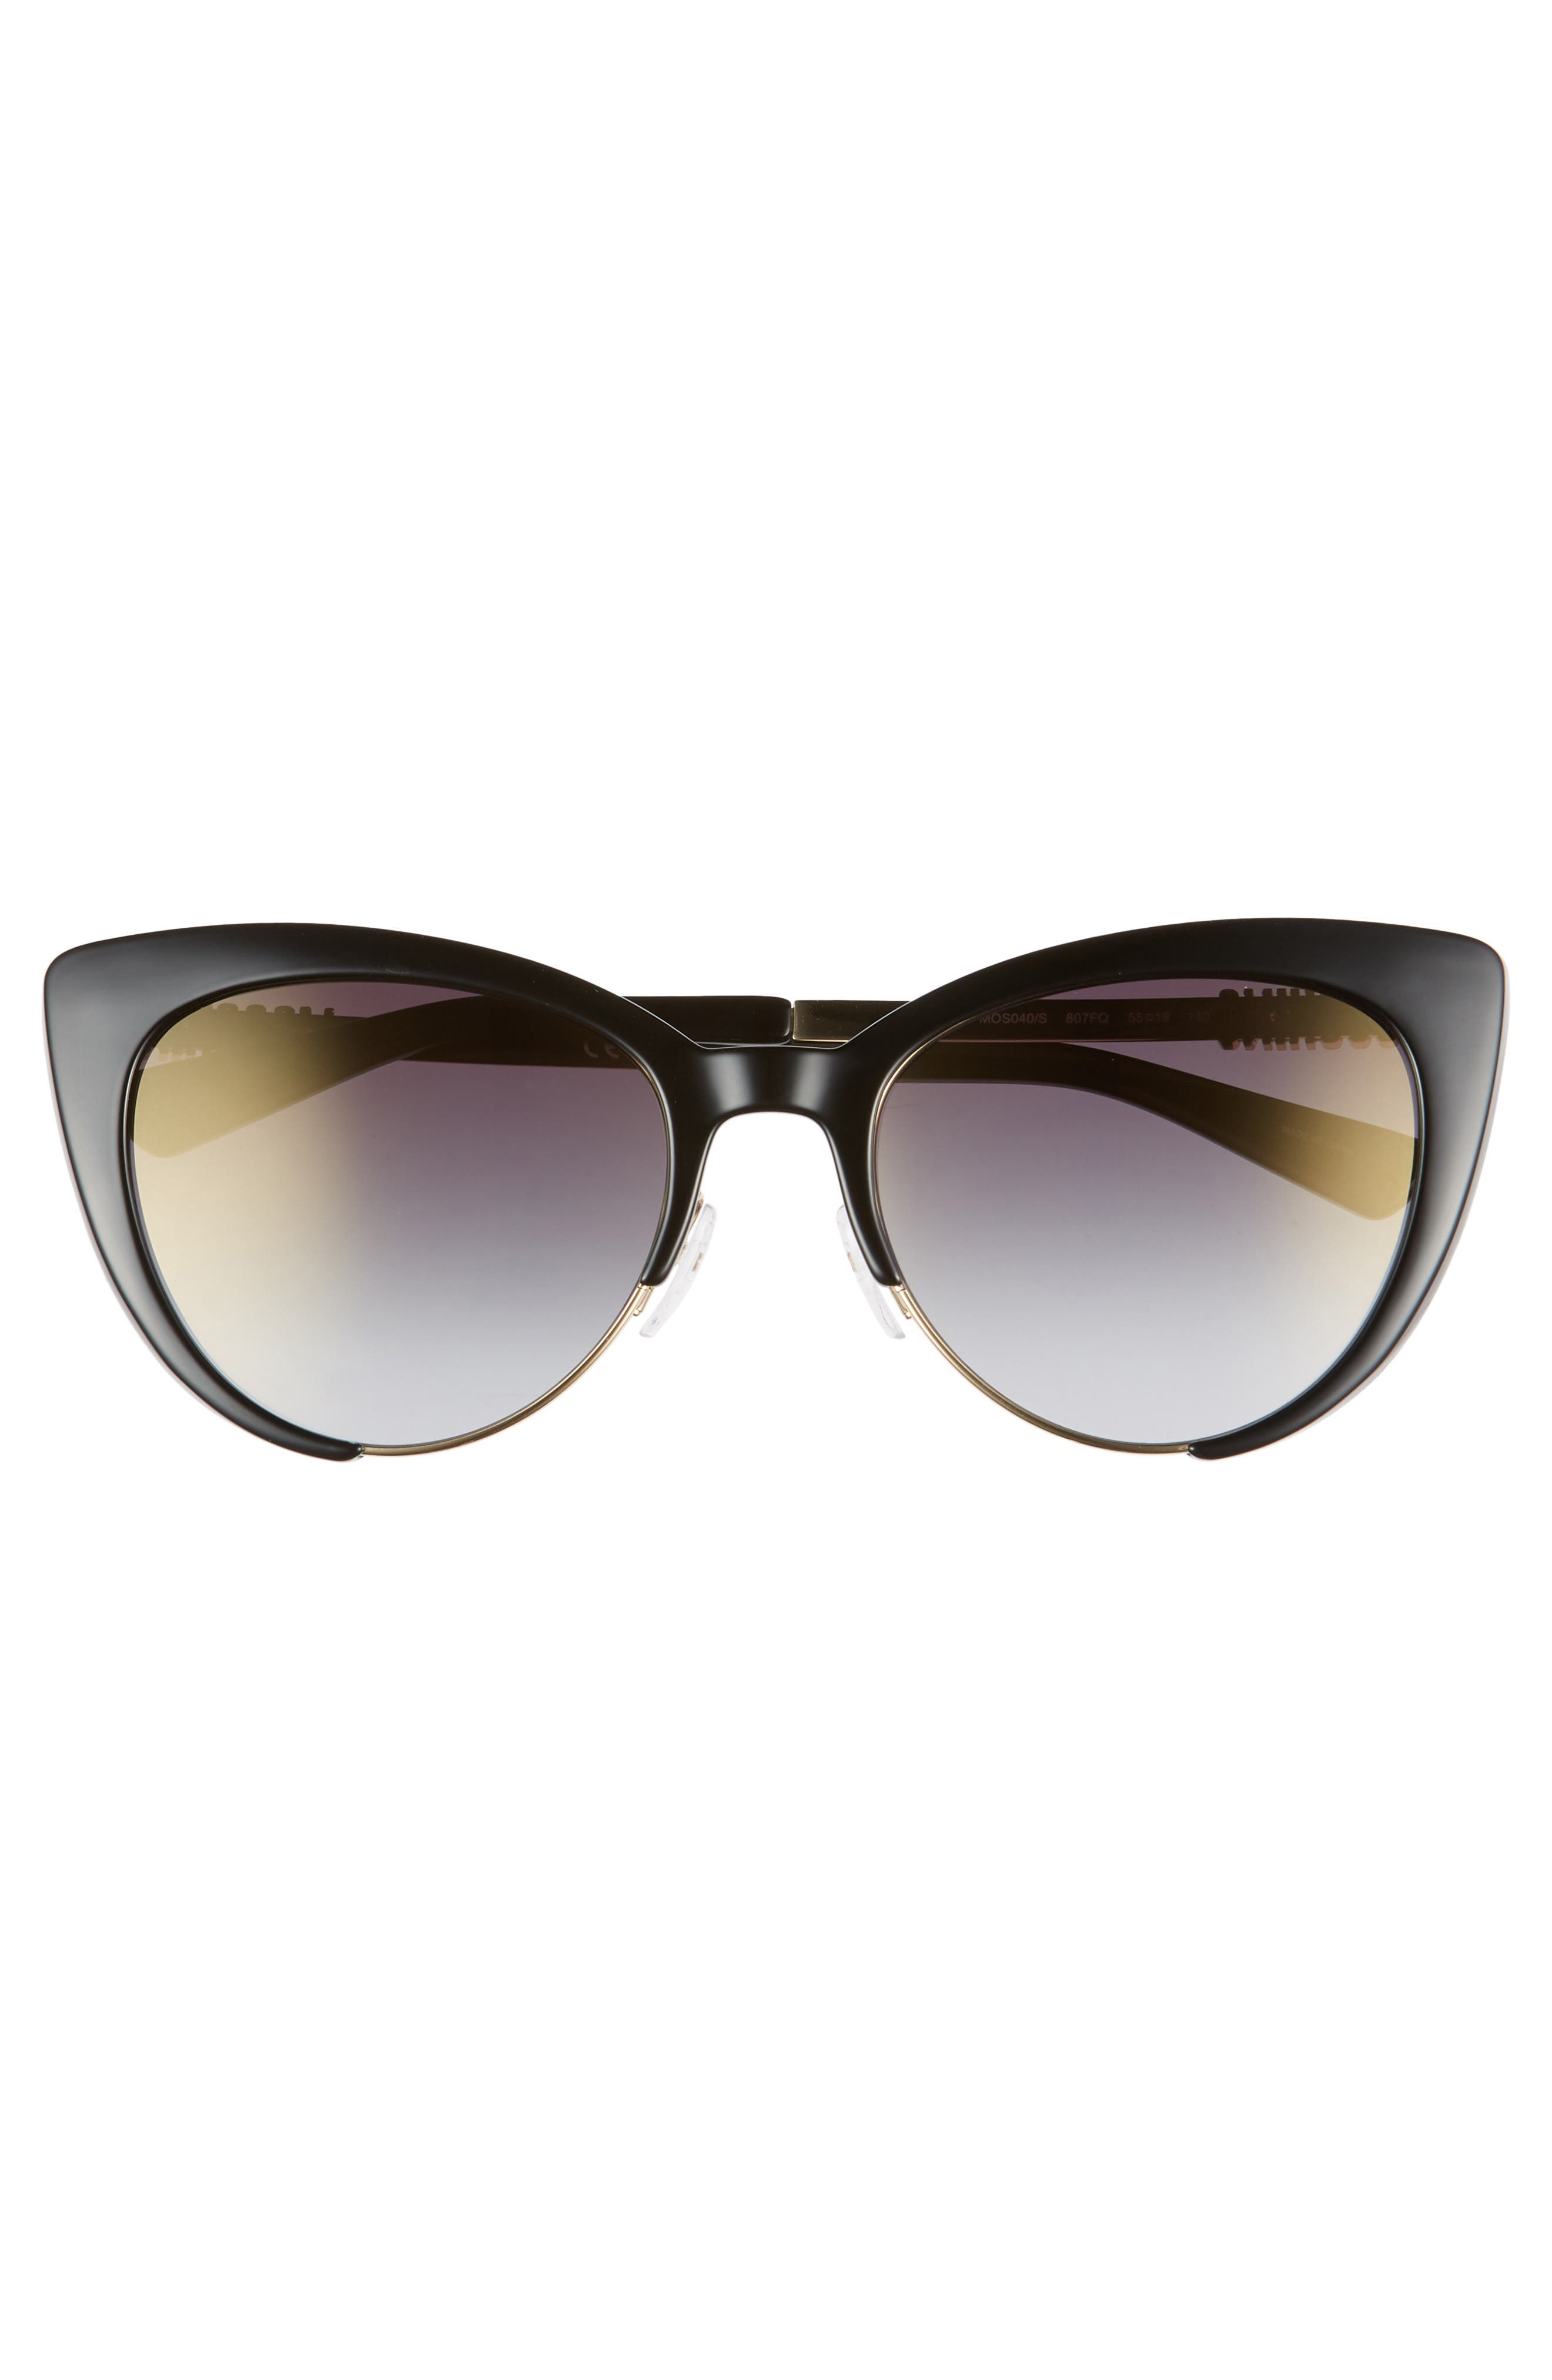 MOSCHINO, 55mm Cat Eye Sunglasses, Alternate thumbnail 3, color, BLACK